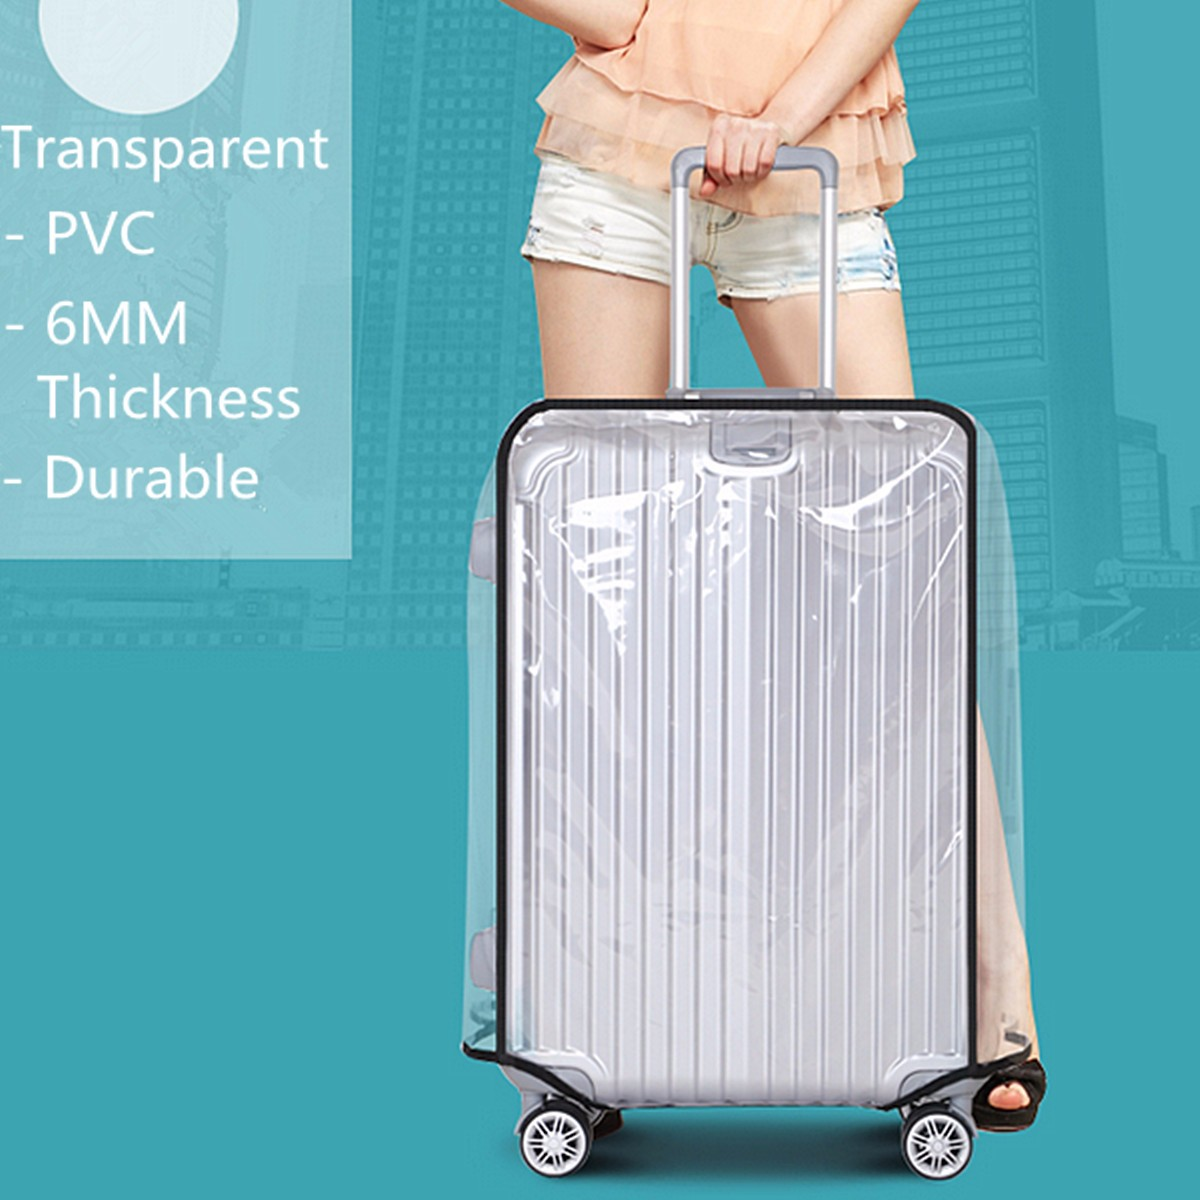 Transparent PVC Trolley Suitcase Cover DustProof Luggage Cover Waterproof Luggage Protective Cover Travel Case 20-30inch